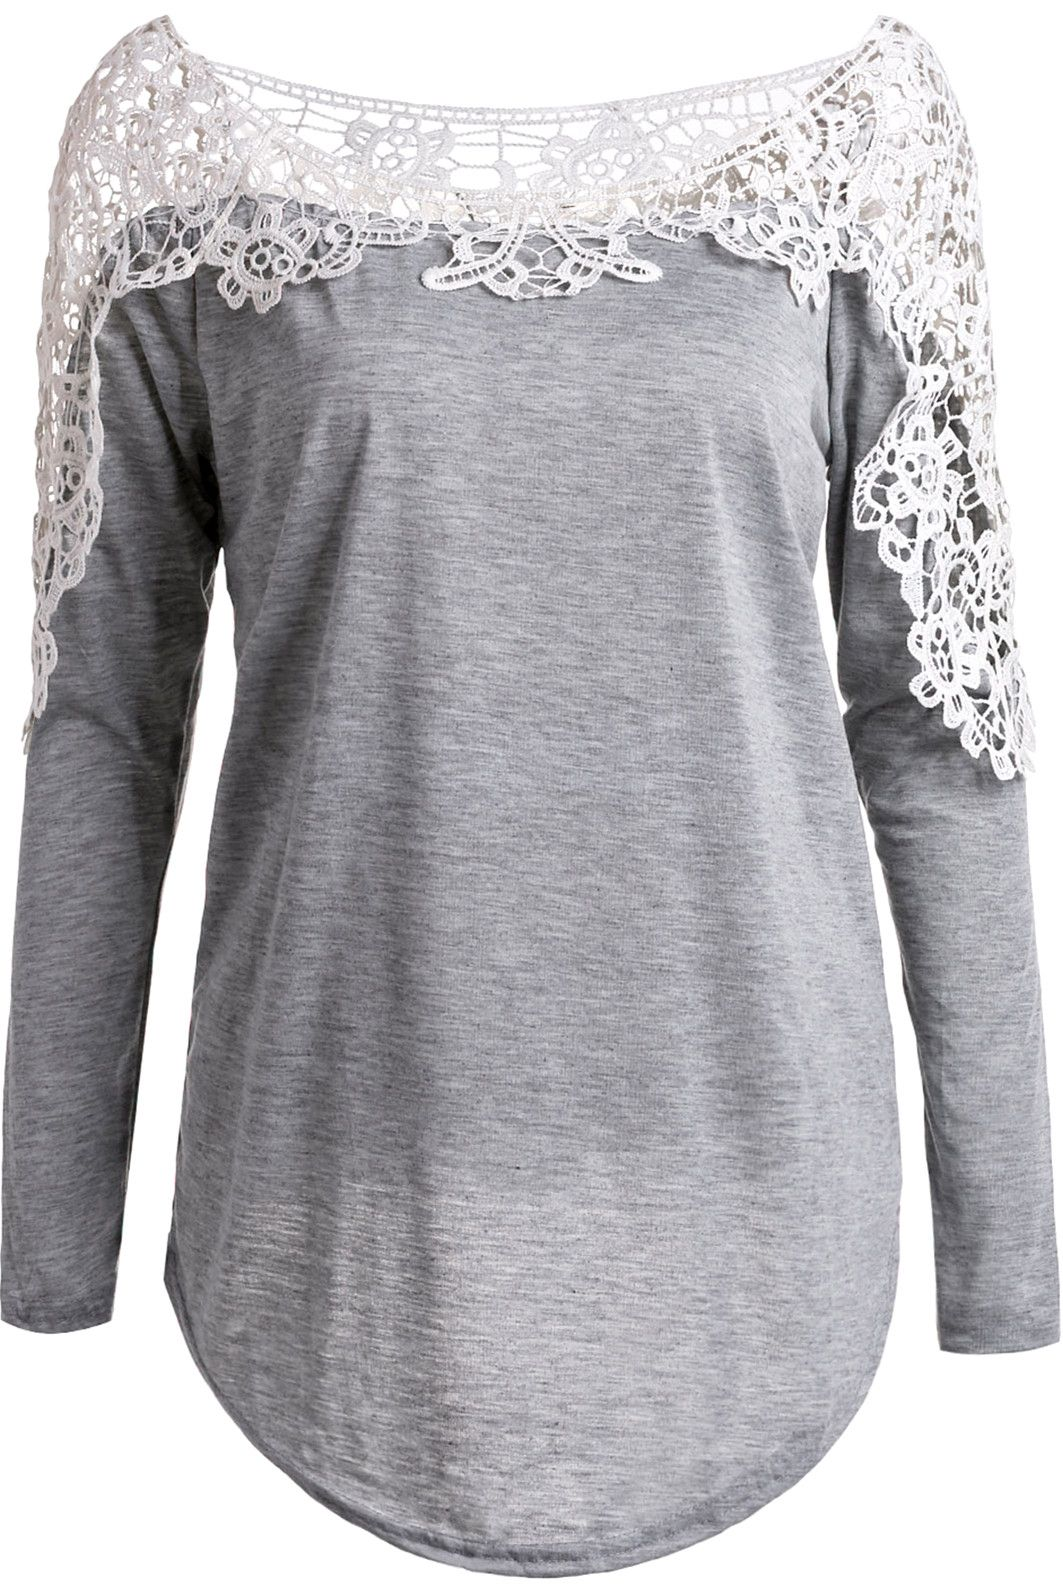 e6a4ffe58026  10.59 Casual Hollow Out Lace Spliced Long Sleeve T-Shirt